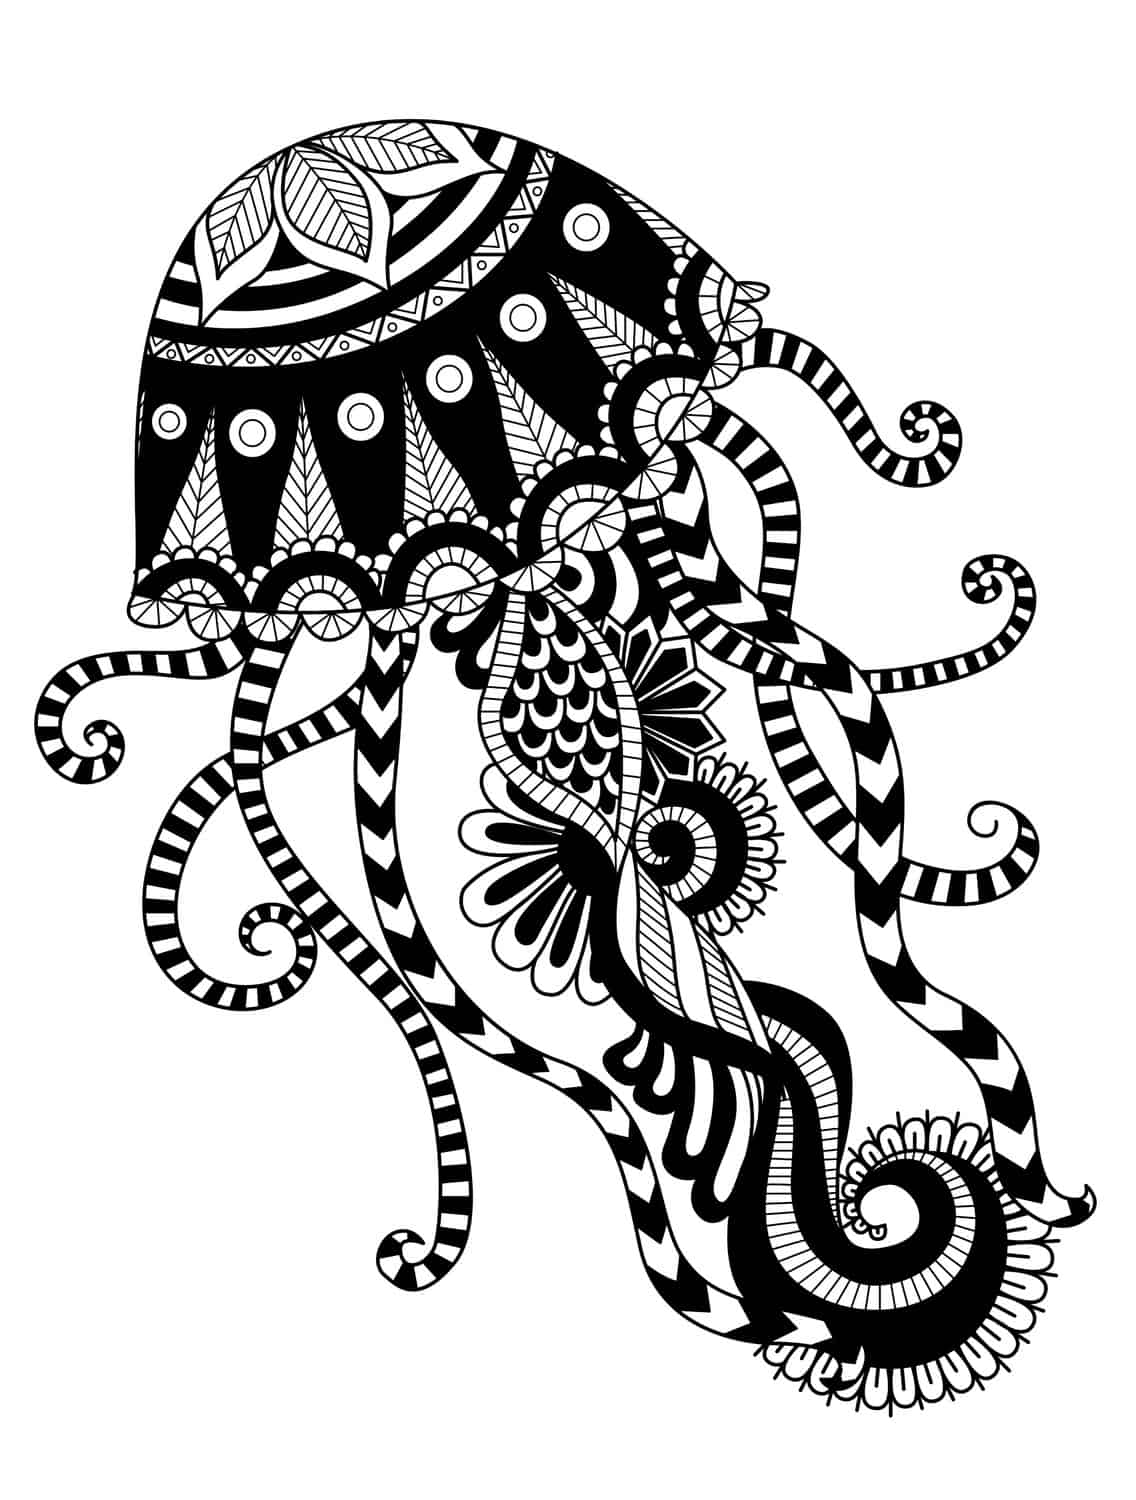 jellyfish coloring pages for adults pic - Fish Coloring Pages For Adults